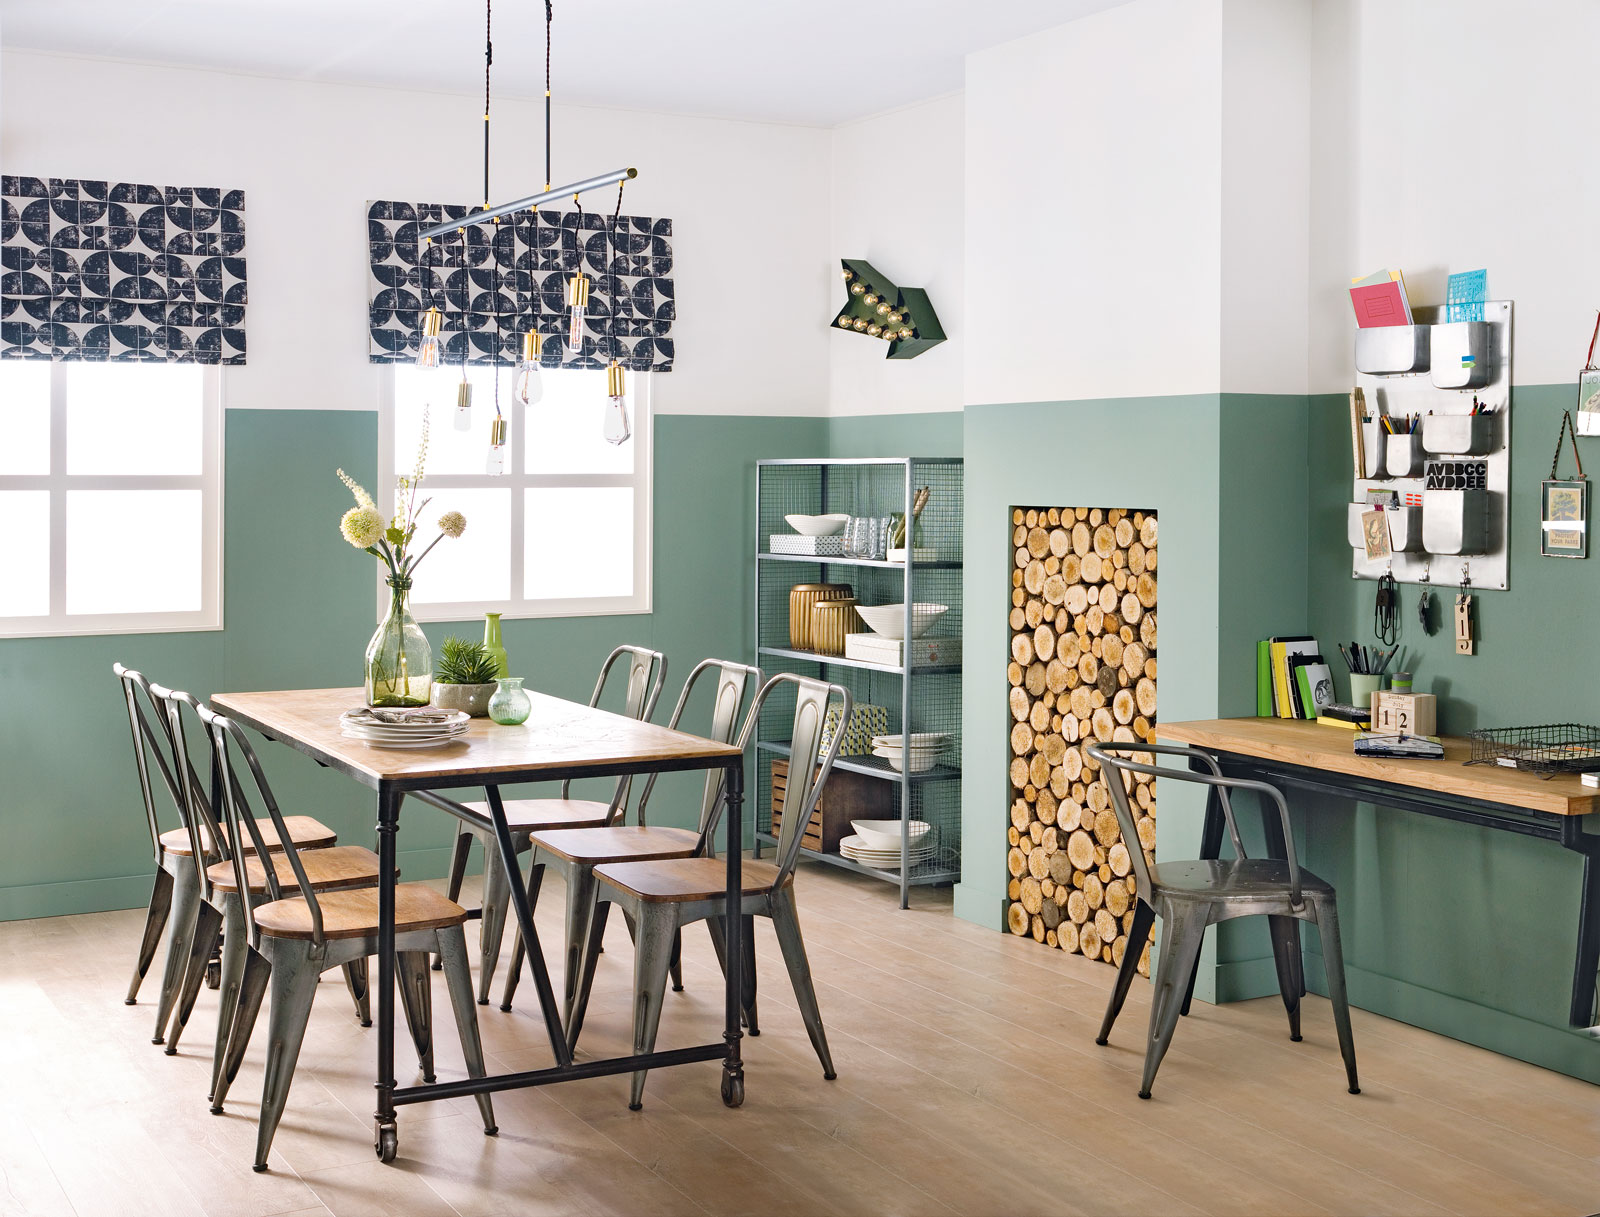 Industrial dining room. Designed for Ideal Home by Sophie Robinson.